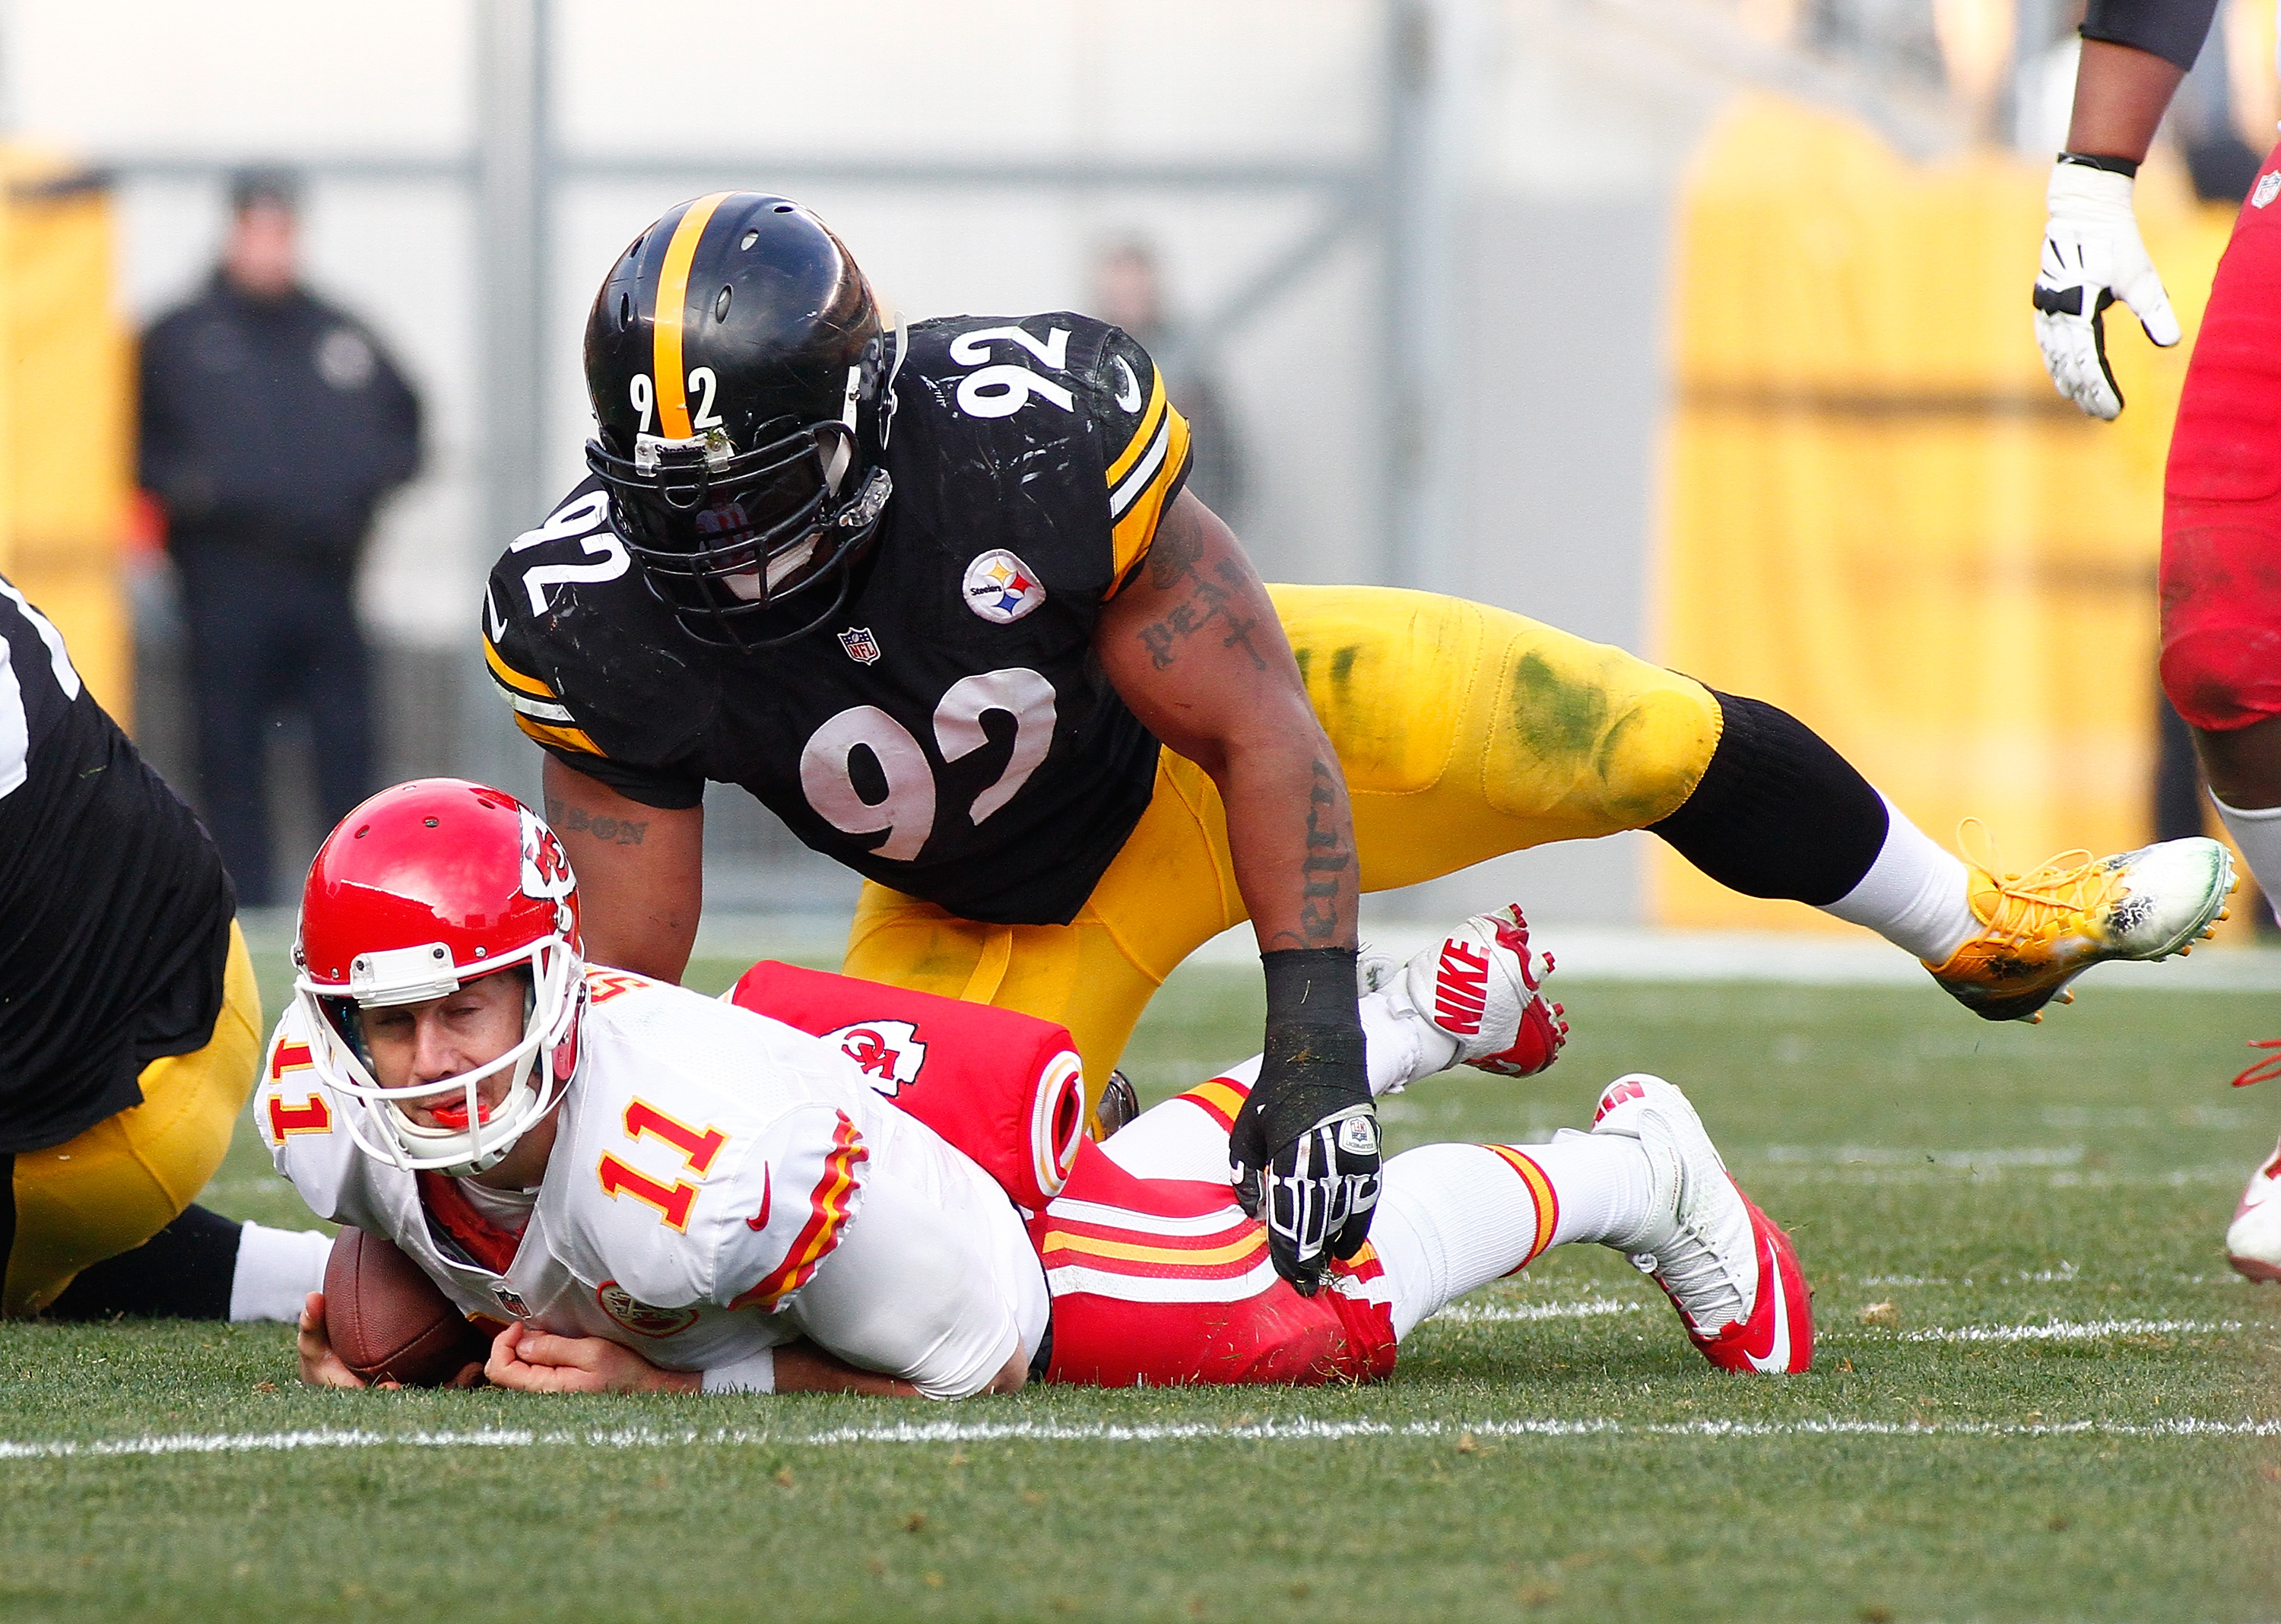 PITTSBURGH, PA - DECEMBER 21: Alex Smith #11 of the Kansas City Chiefs is tackled by James Harrison #92 of the Pittsburgh Steelers during the third quarter at Heinz Field on December 21, 2014 in Pittsburgh, Pennsylvania. (Photo by Justin K. Aller/Getty Images)